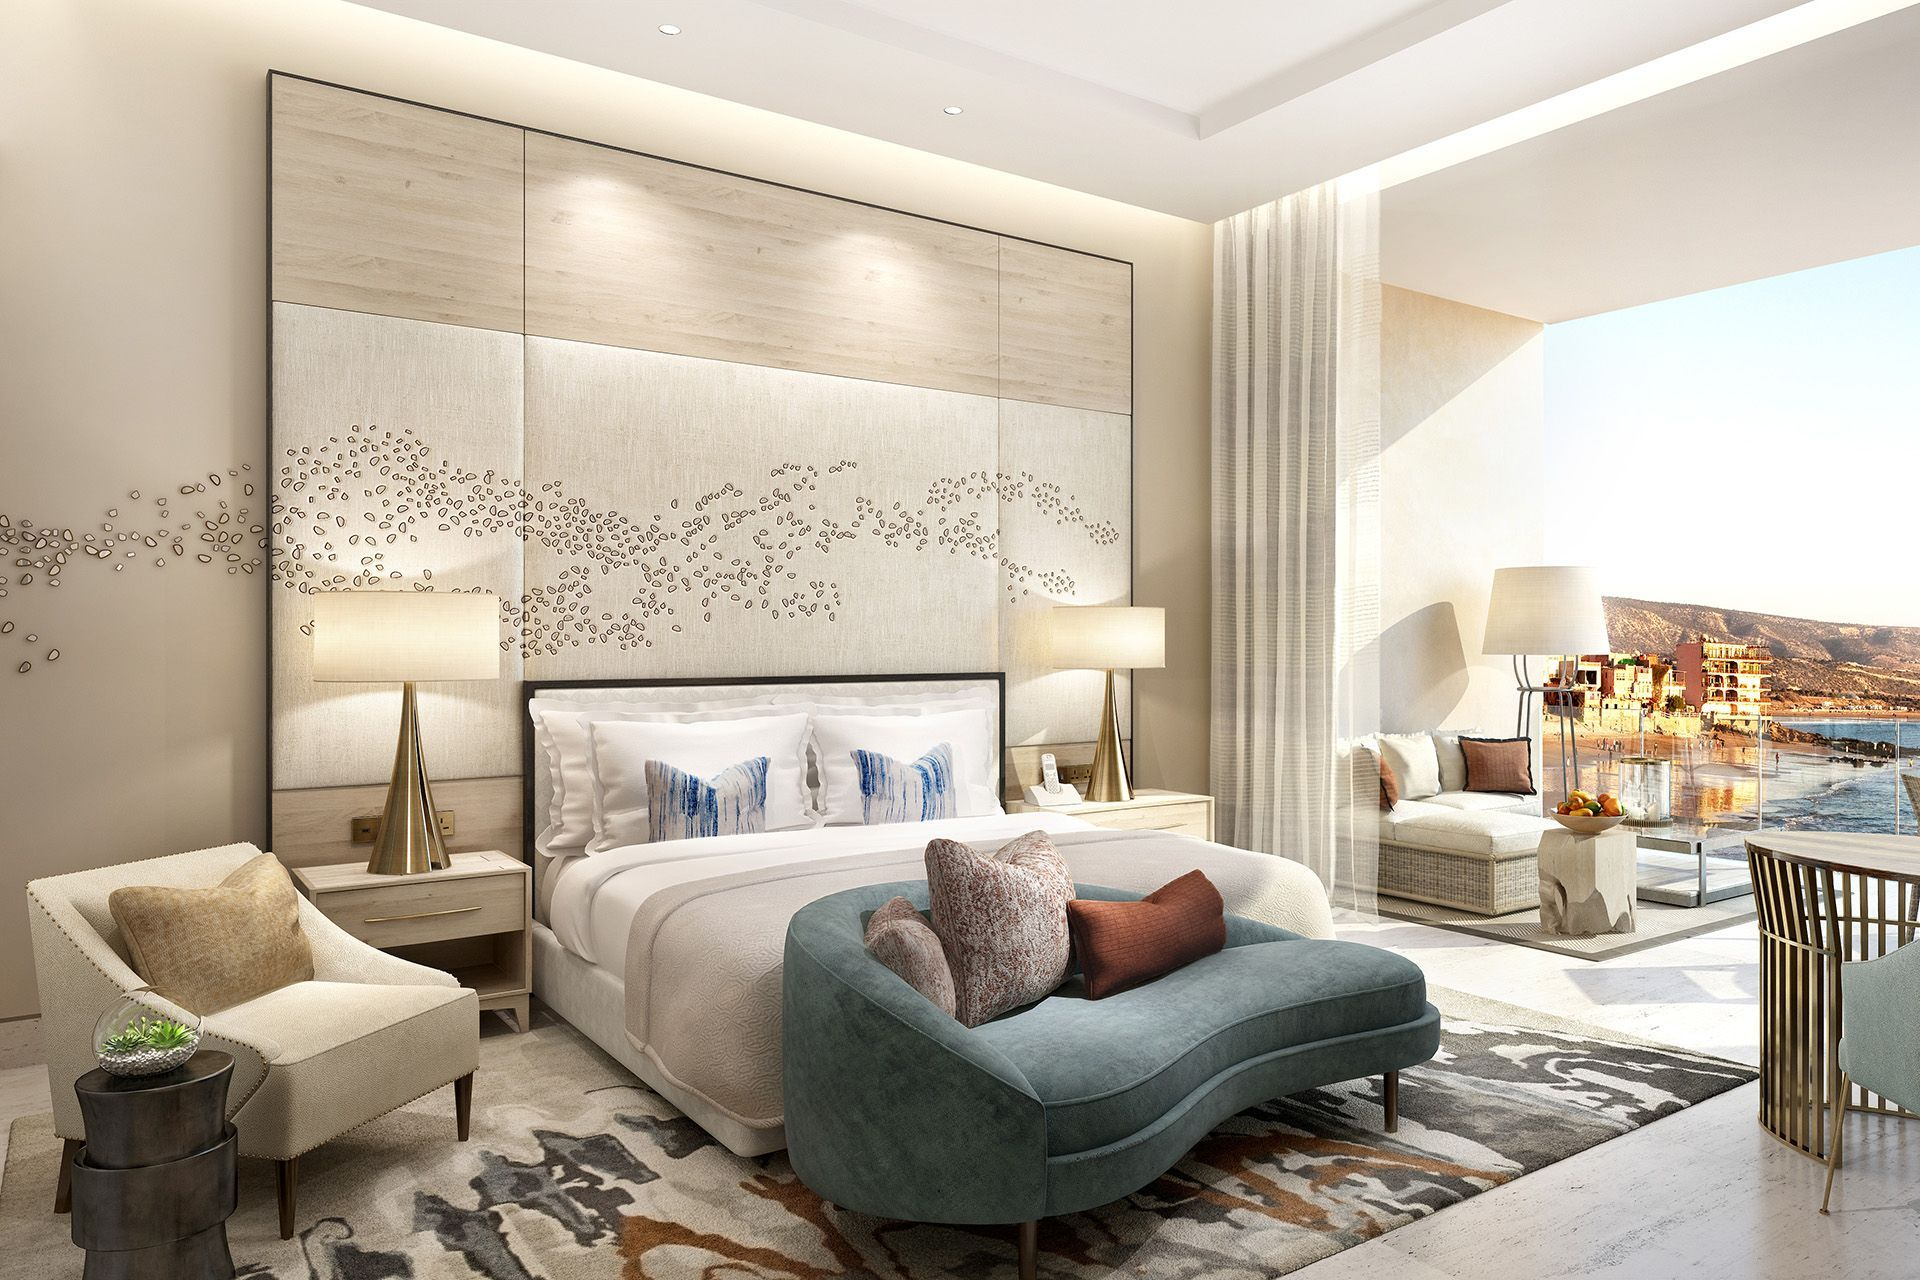 Four seasons taghazout interior designers wimberly for Hotel interior decor